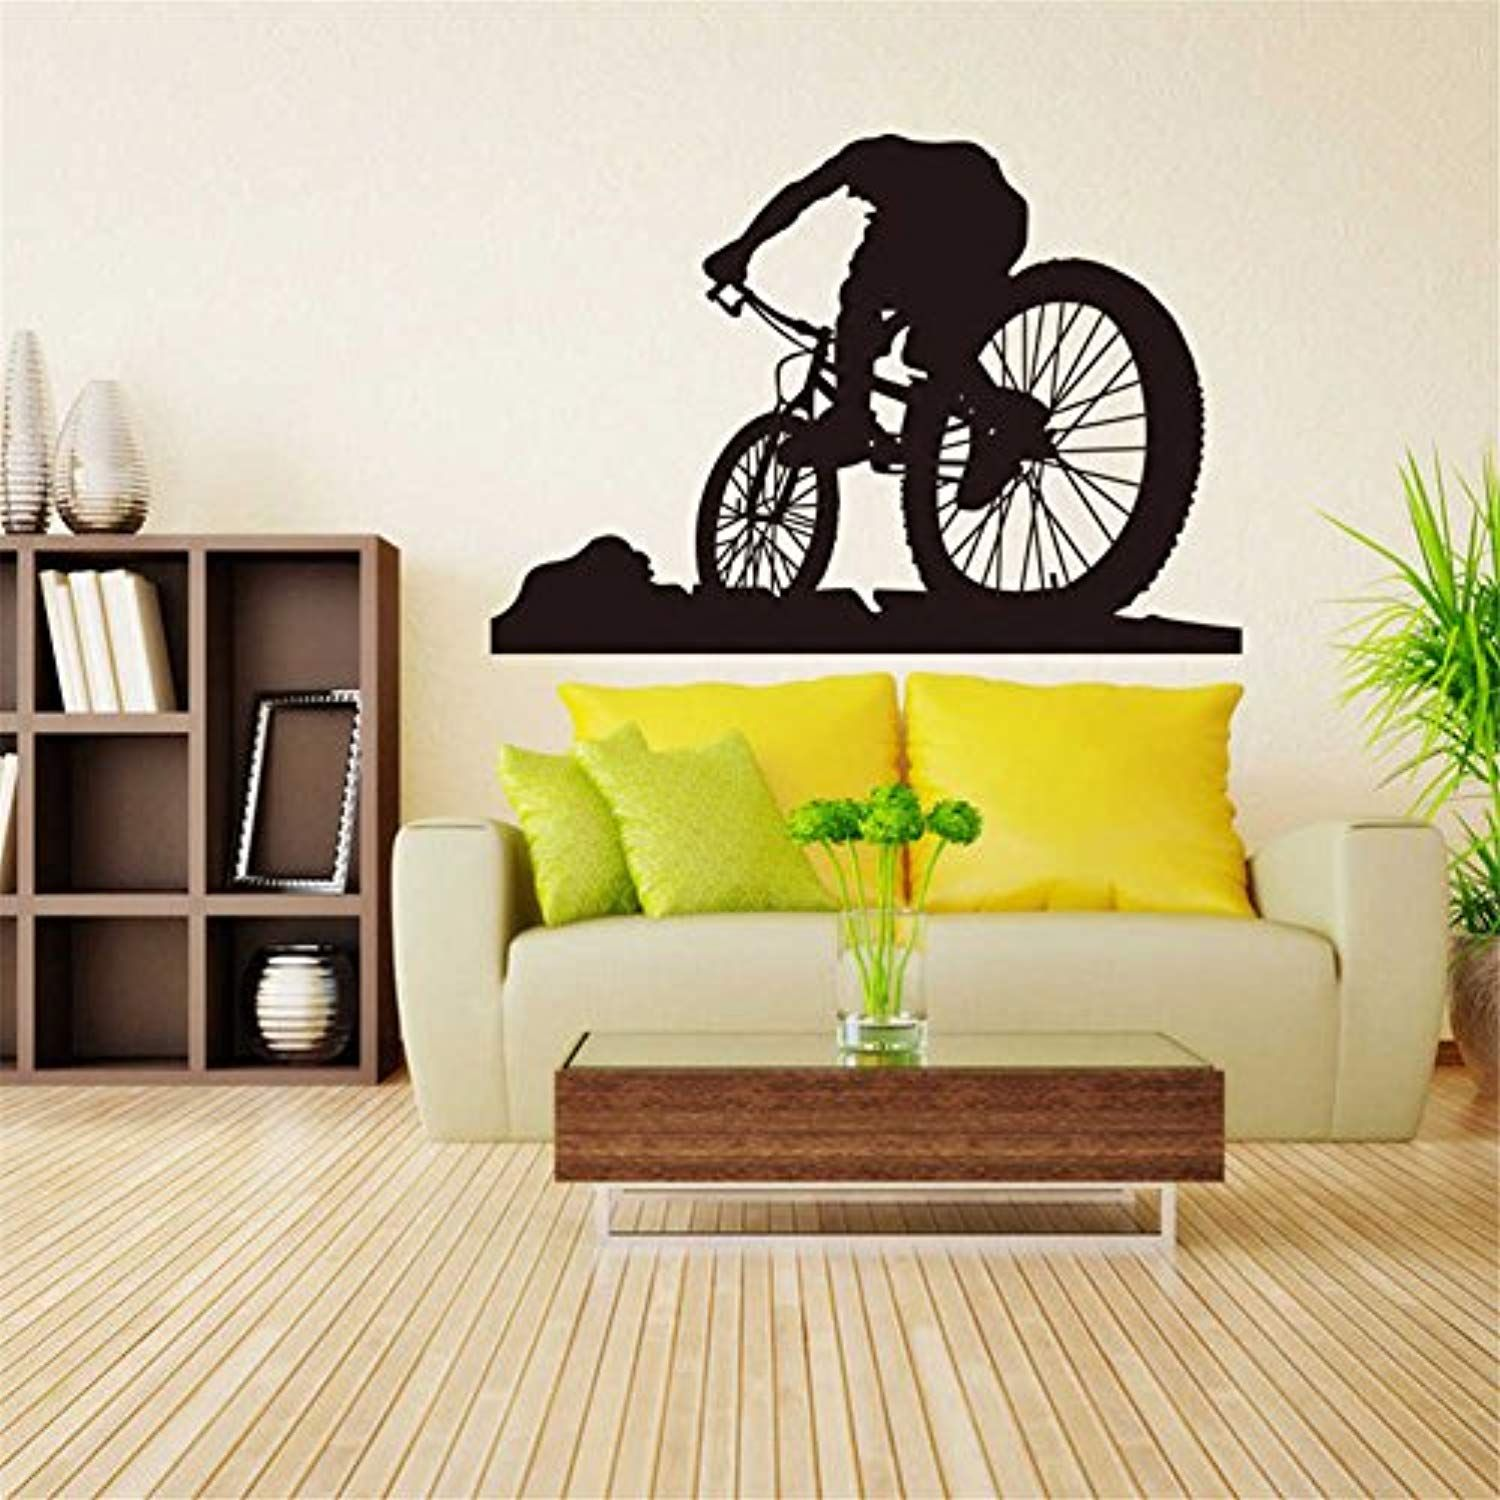 BIBITIME Bicycling Wall Art Decal Cycling Bicycle Silhouette Vinyl ...